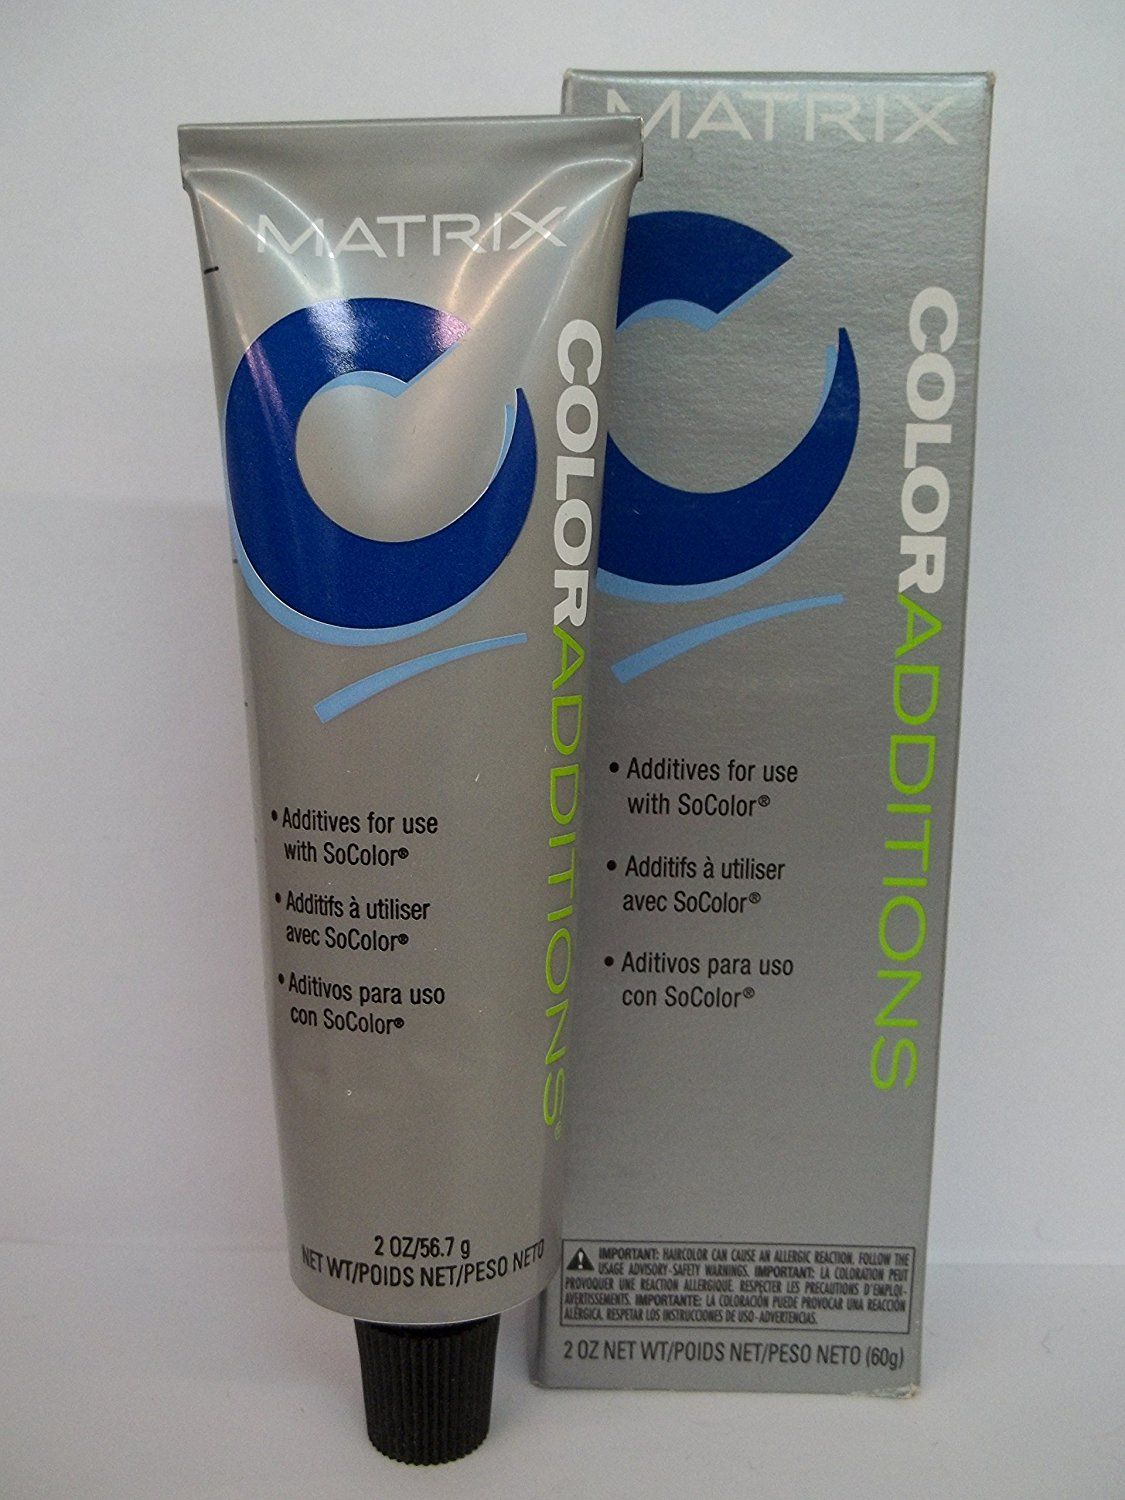 Matrix Color Additions Color Additives For Matrix Socolor 2 Fl Oz Tube Shade Selection Red This Is An Amazon Affili Matrix Color R Colors Hair Color